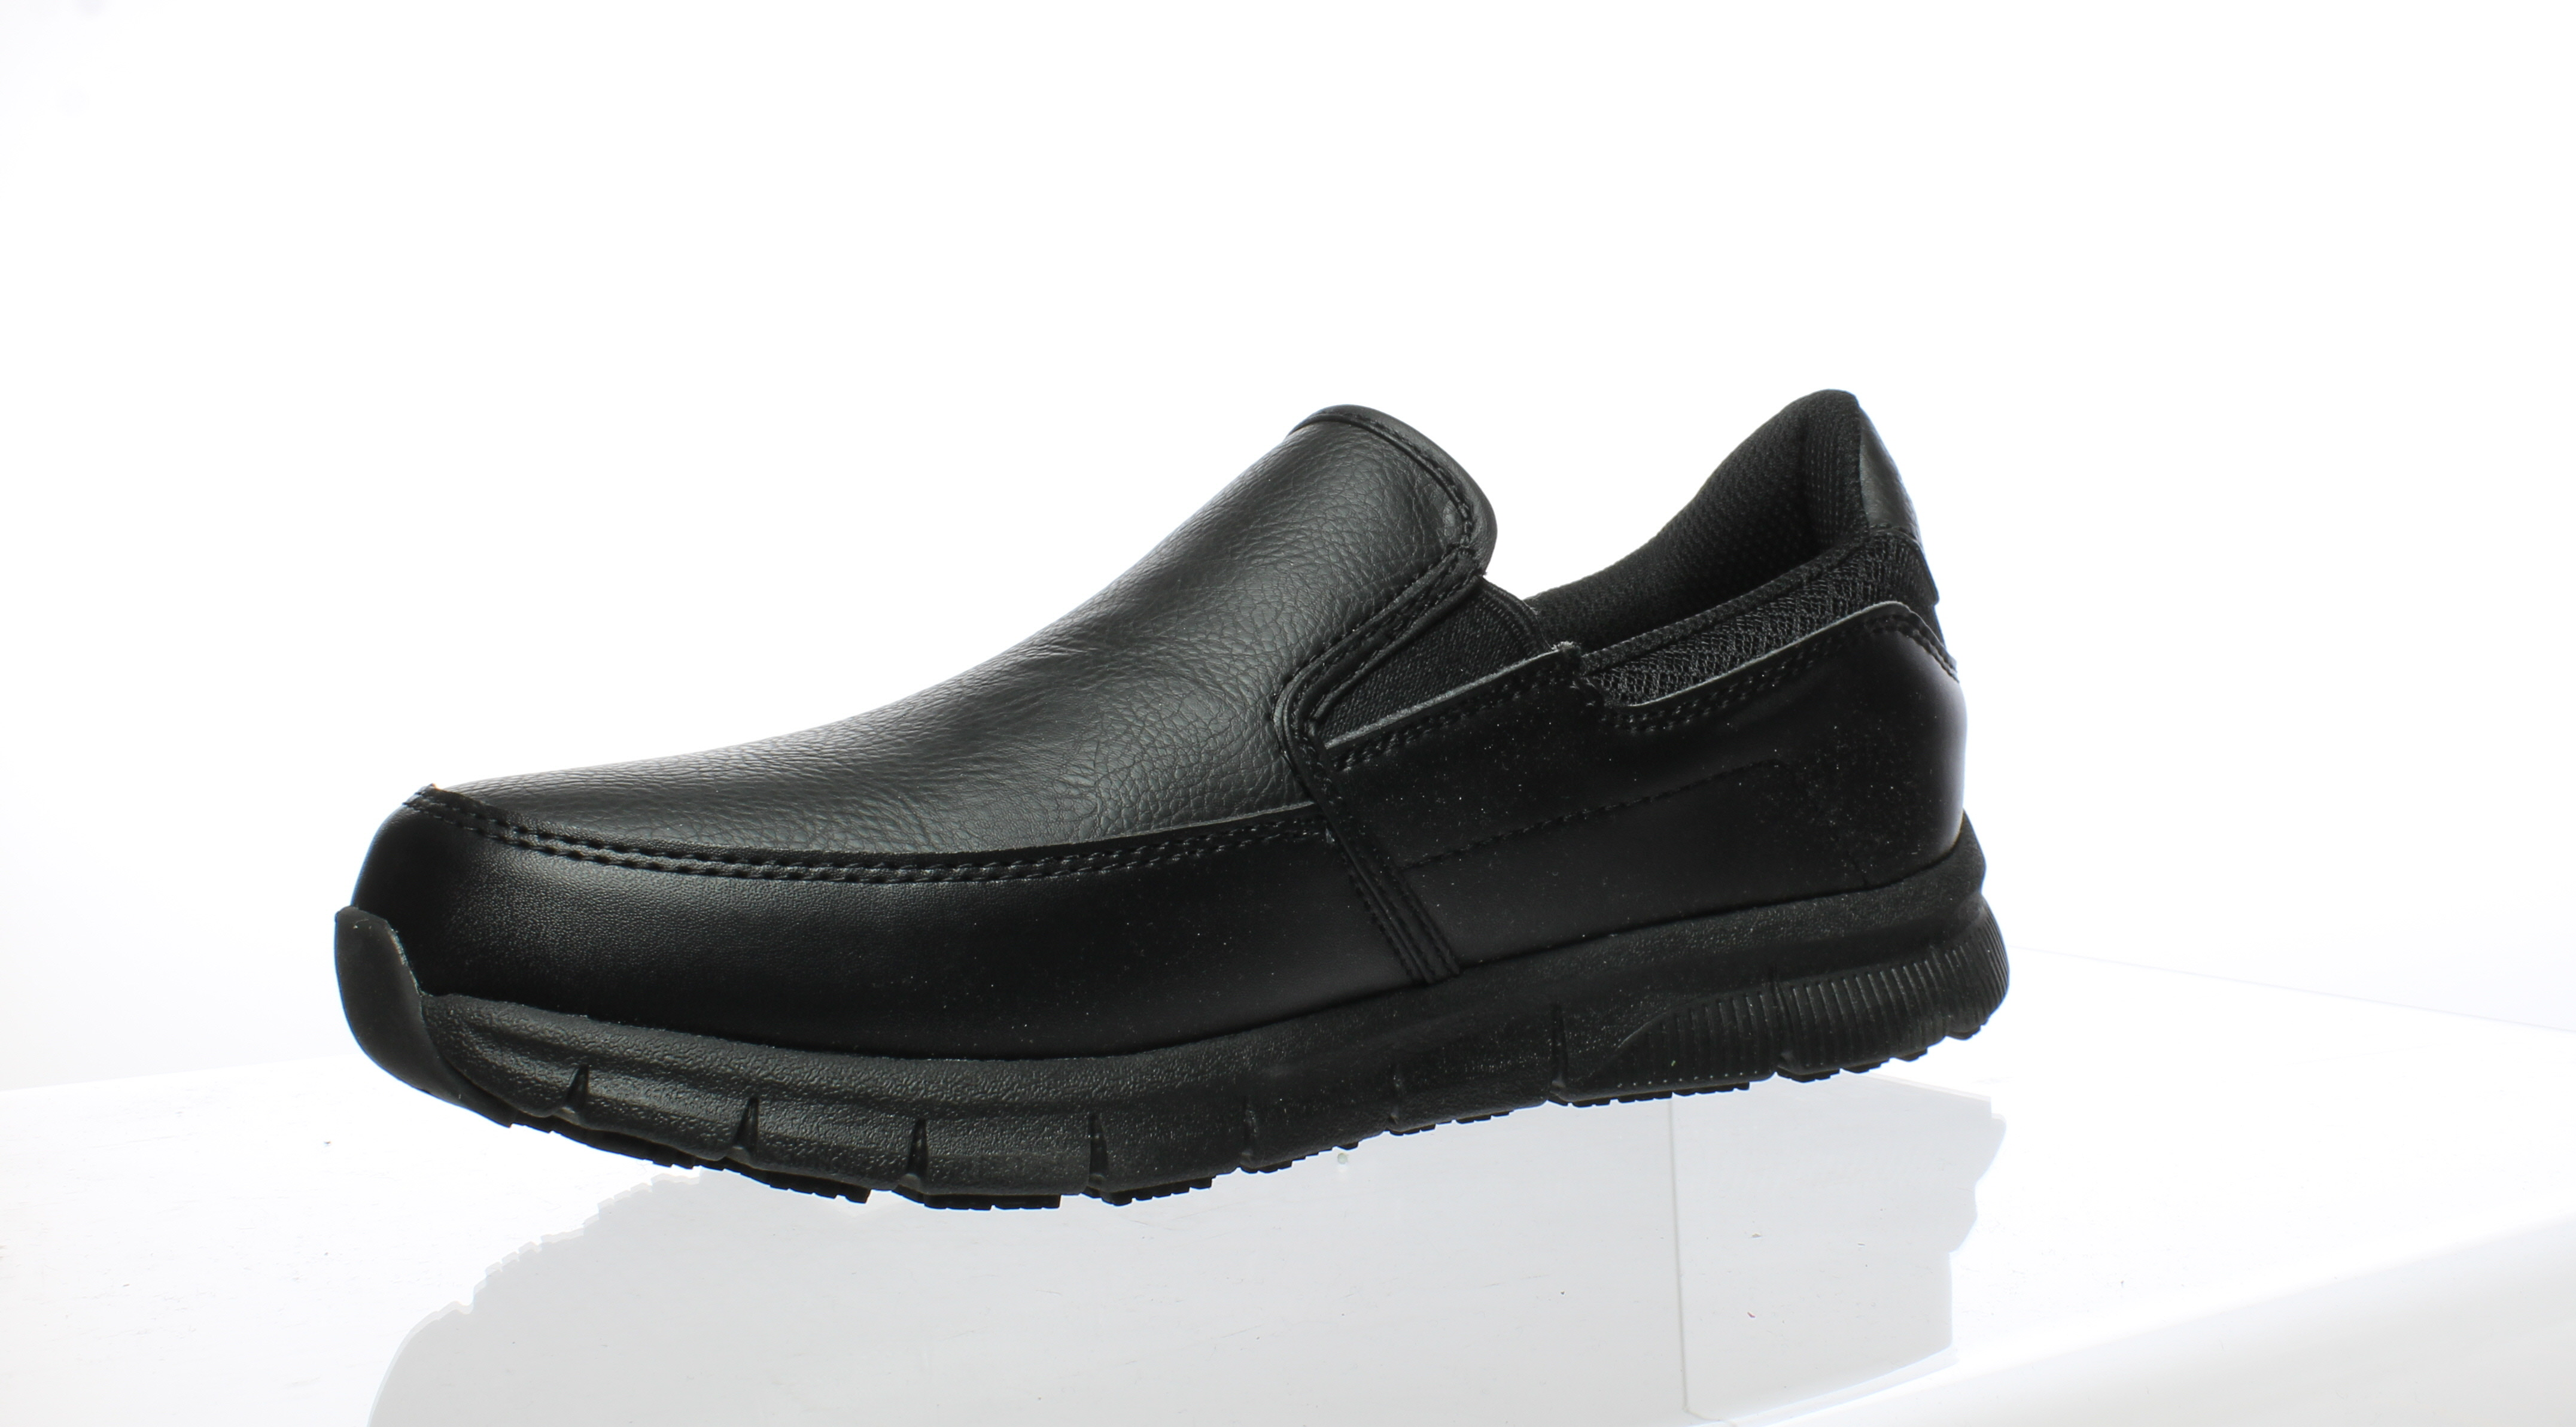 2a15dd0031b383 Skechers Womens 77236 Black Occupational Shoes Size 8.5 (68868 ...